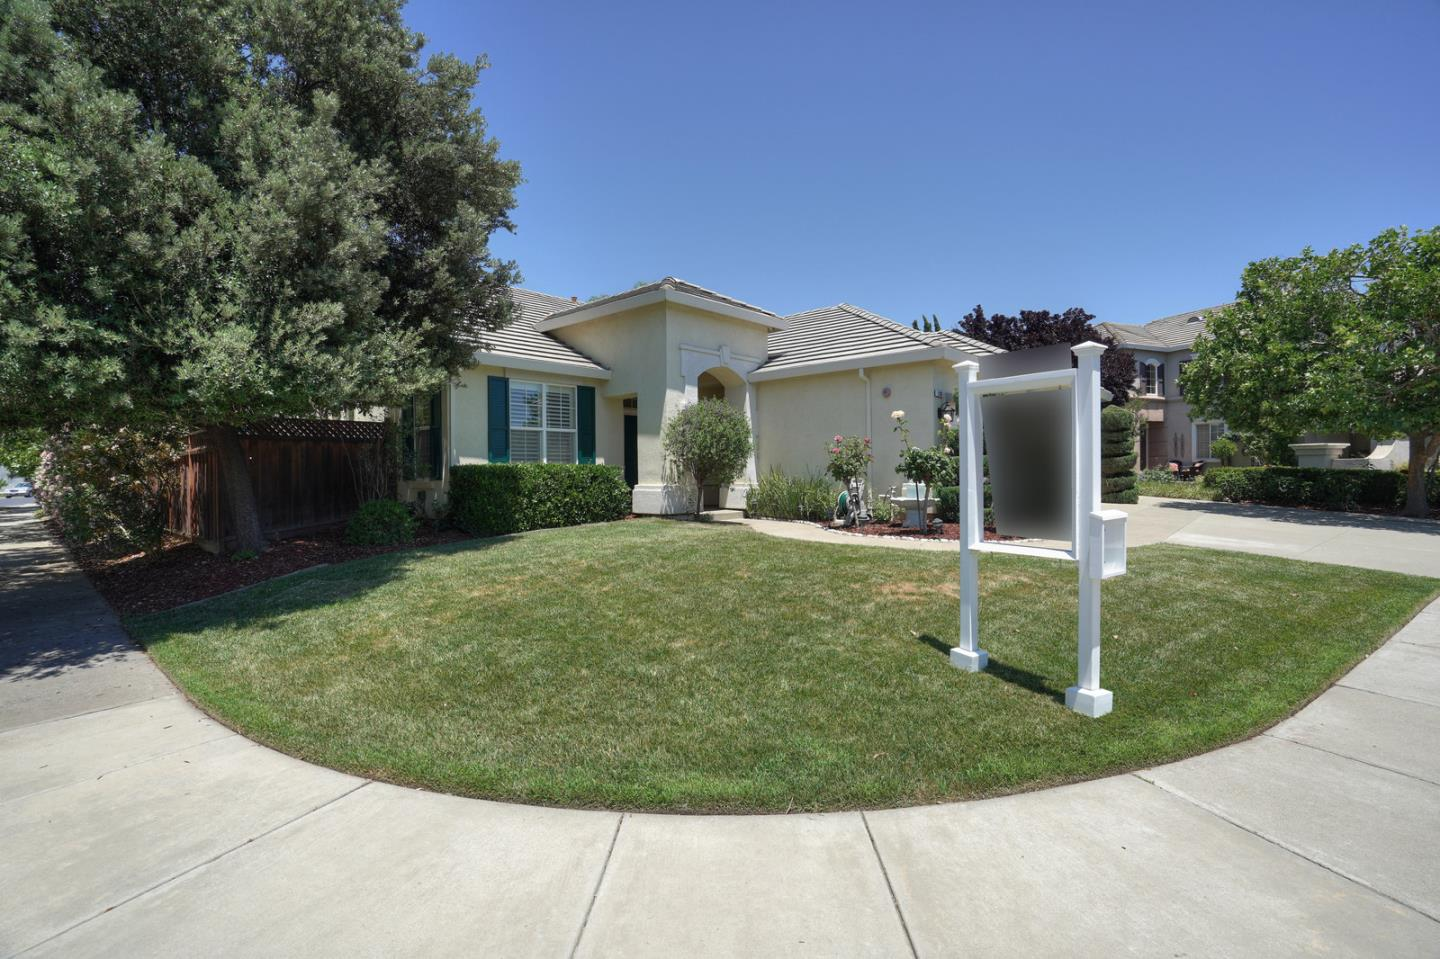 126 Tourmaline Avenue Livermore, California 94550, 4 Bedrooms Bedrooms, ,2 BathroomsBathrooms,Residential,For Sale,126 Tourmaline Avenue,ML81757438